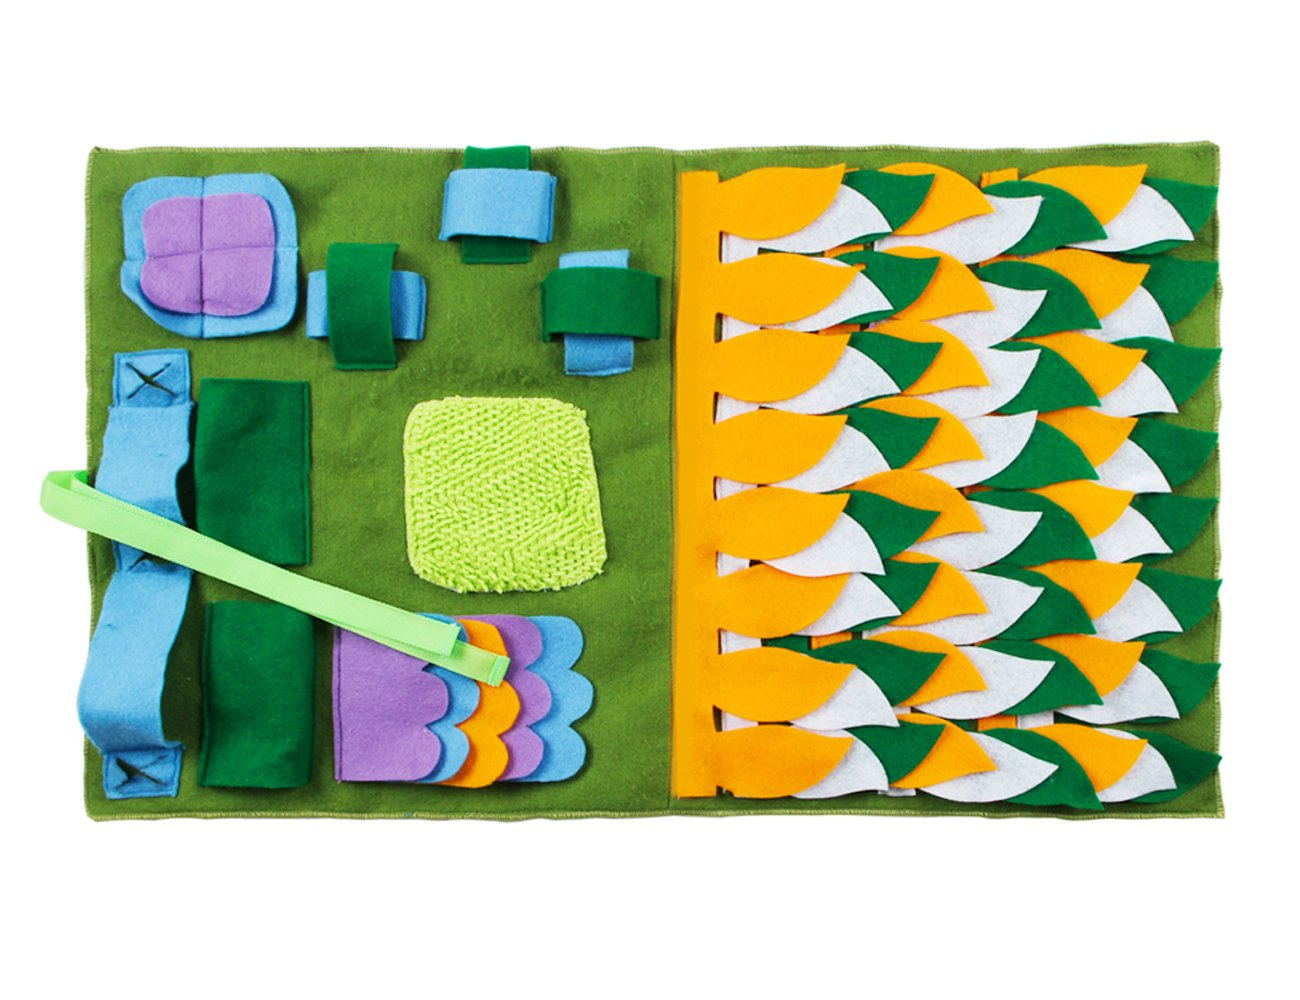 Green L Green L IFOYO Dog Feeding Mat, Dog Snuffle Mat Large Dog Training Pad Pet Nose Work Blanket Non Slip Pet Activity Mat Foraging Skill, Stress Release, (L, 17.7x29.5in   45x75cm)